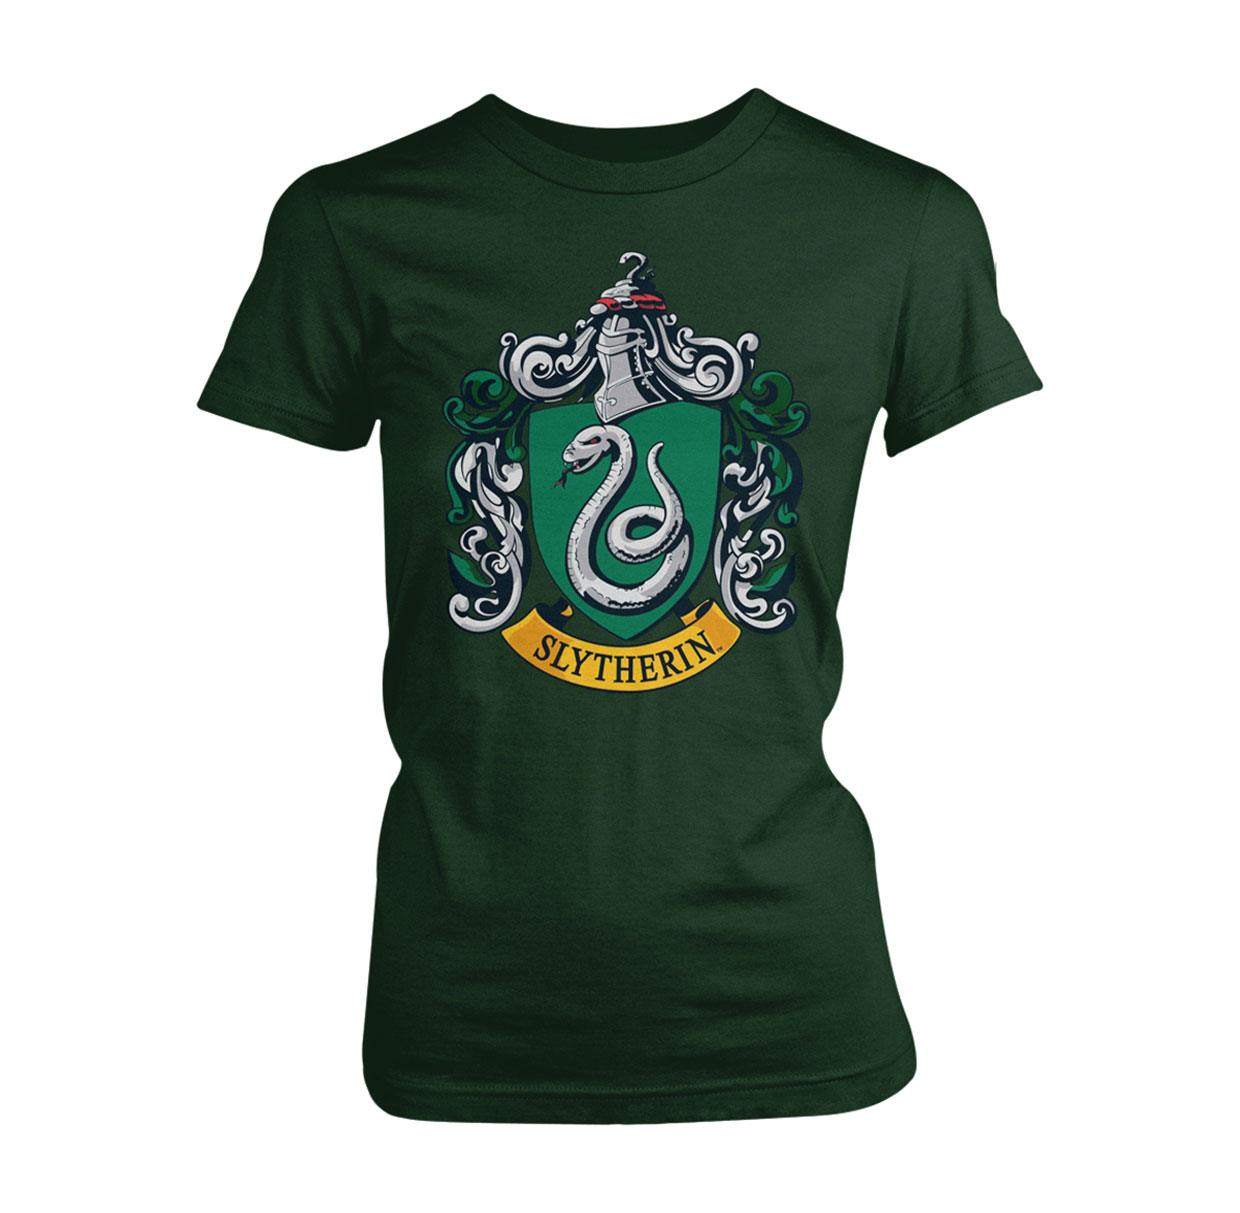 Harry Potter Ladies T-Shirt Slytherin Size XL